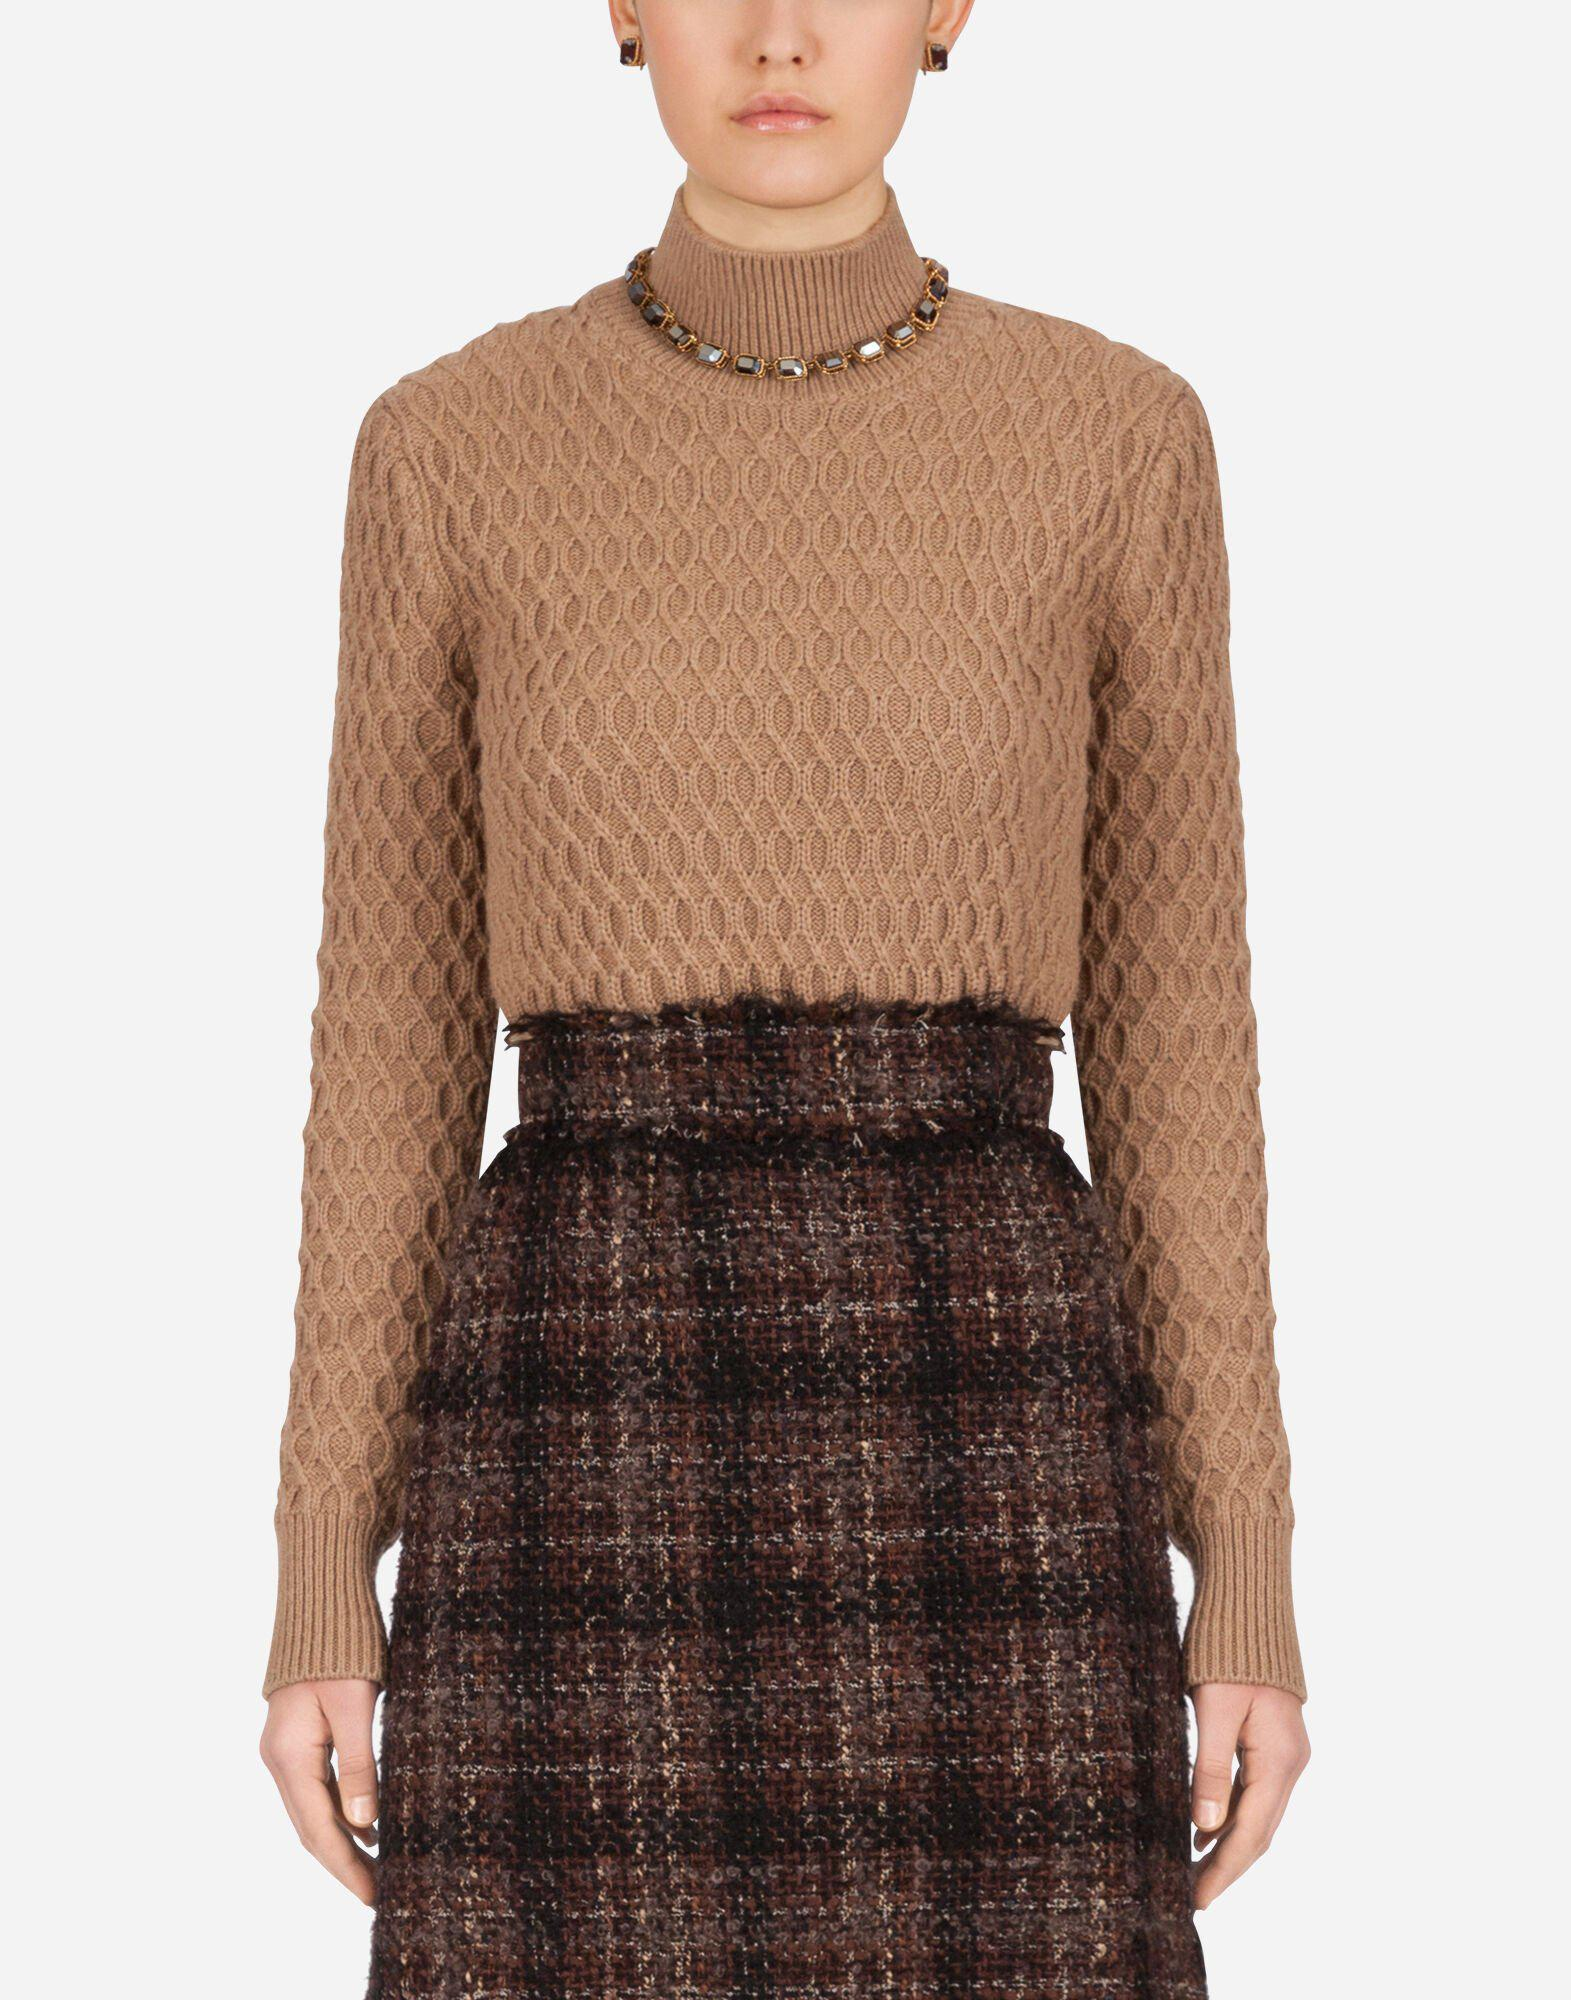 High-neck sweater in camel with rhombus stitch